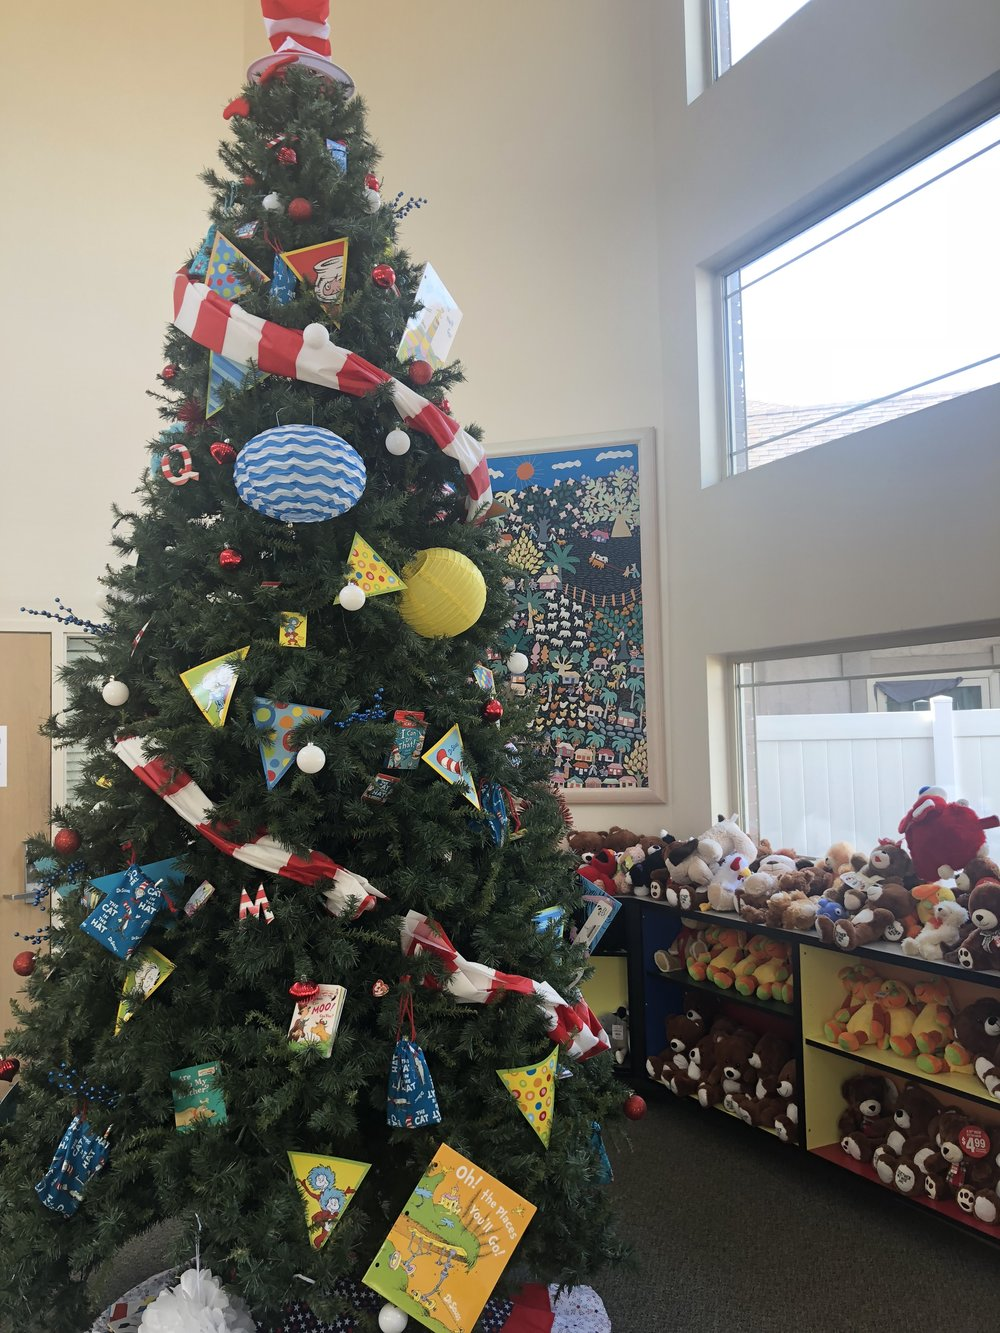 WHY IS THIS IMPORTANT? - A Christmas tree adorned with lights and ornaments in a home brings warmth and a sense of celebration! Same thing here!! Our trees are up all year and are the very first thing everyone sees when they enter our shelter. They are seen MANY times a day by children, teens and staff. These trees help to provide a fun, festive, kid-friendly atmosphere and an assurance that the children are in a safe place now. They bring a smile, lift the spirit, and just one more way we strive to improve quality of life for the kids we serve. Makes each day a bit brighter!